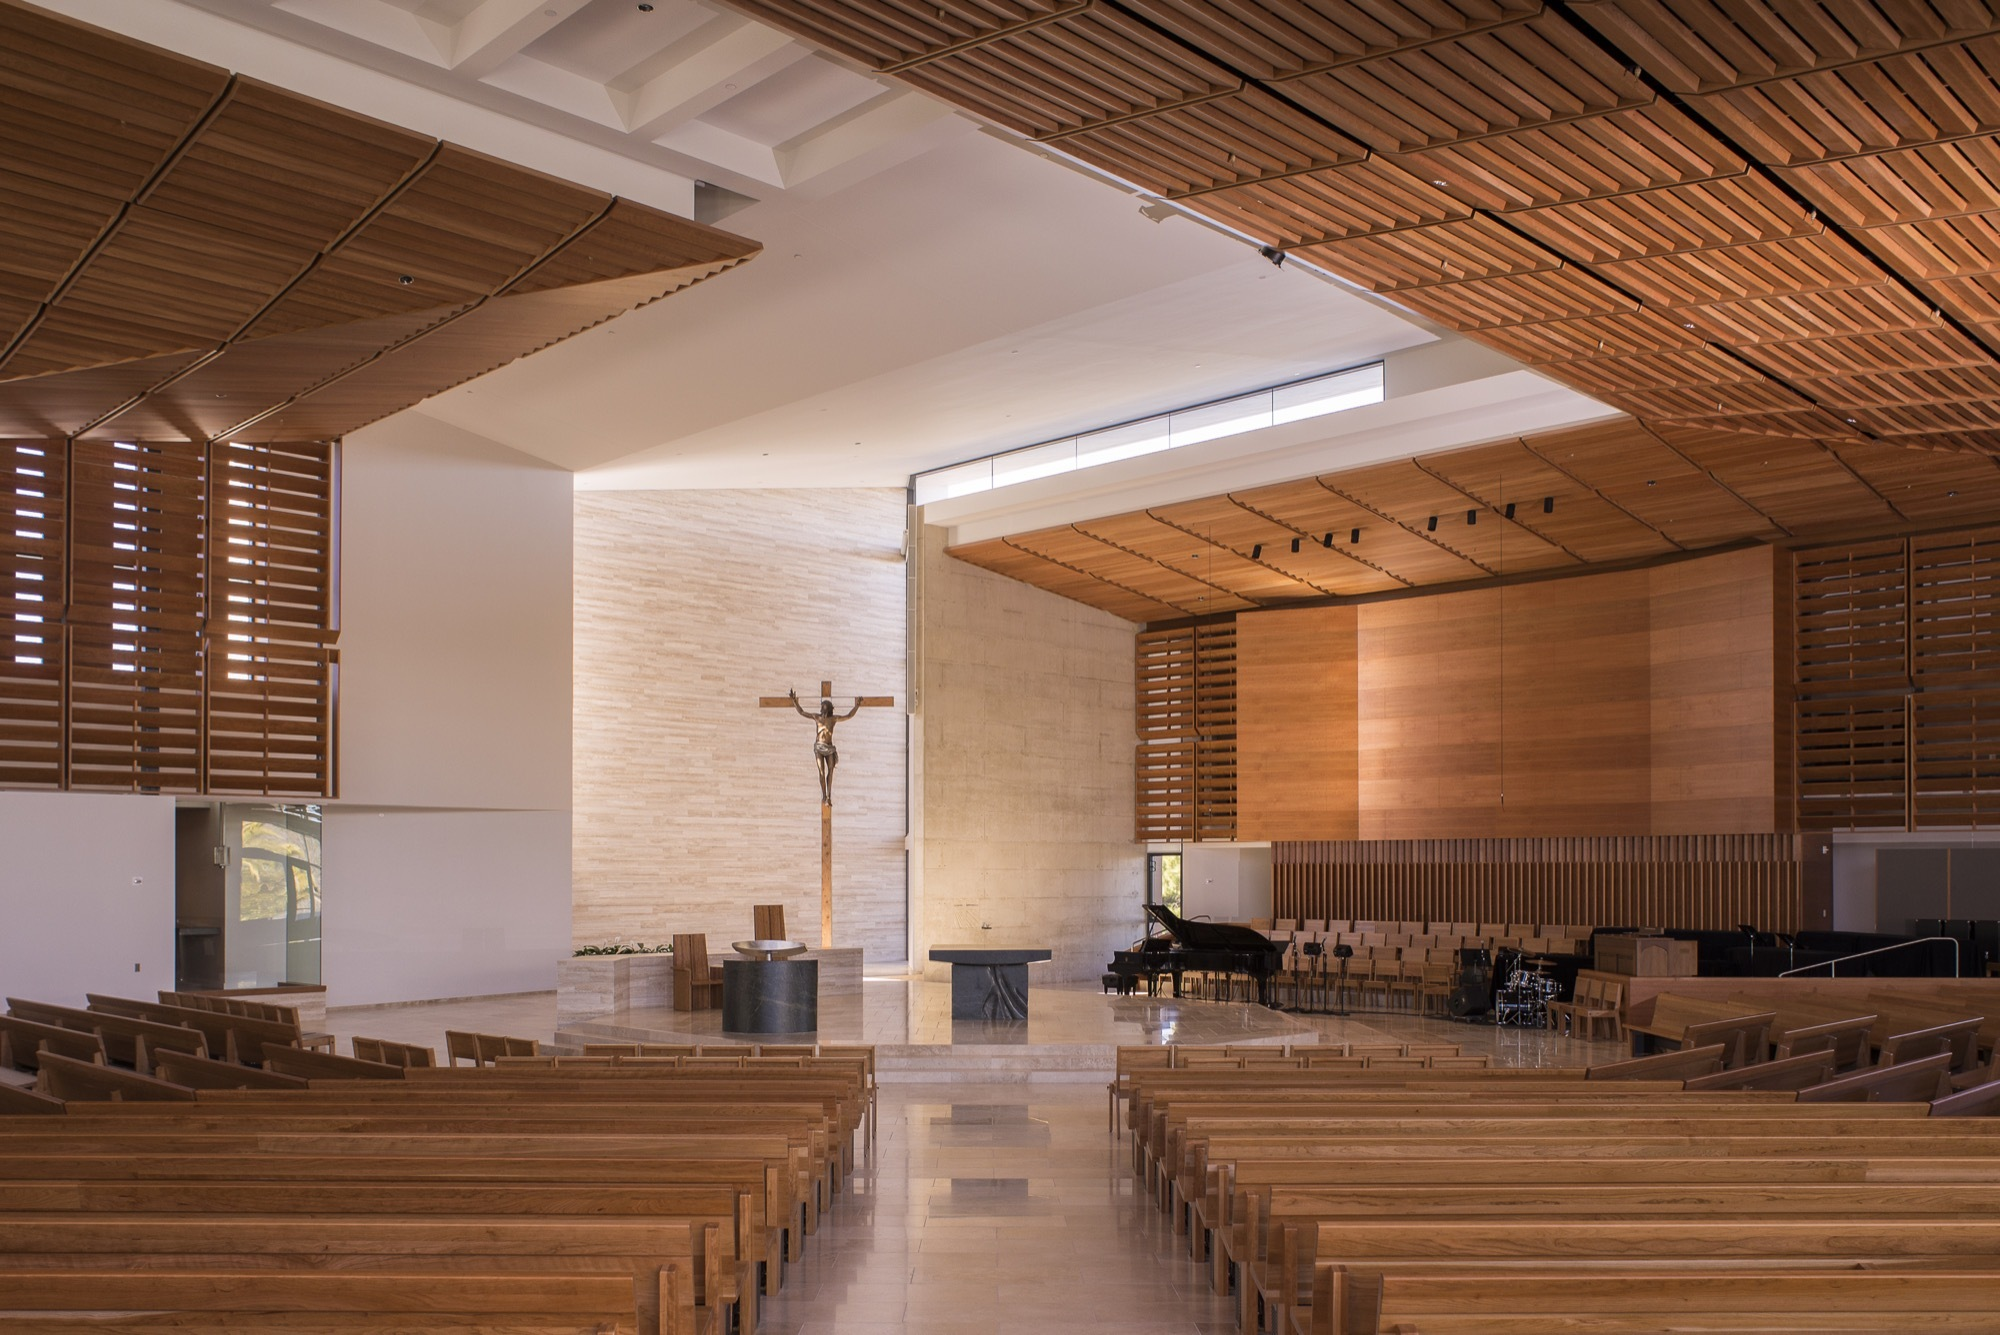 Gallery of St. Thomas More Catholic Church / Renzo